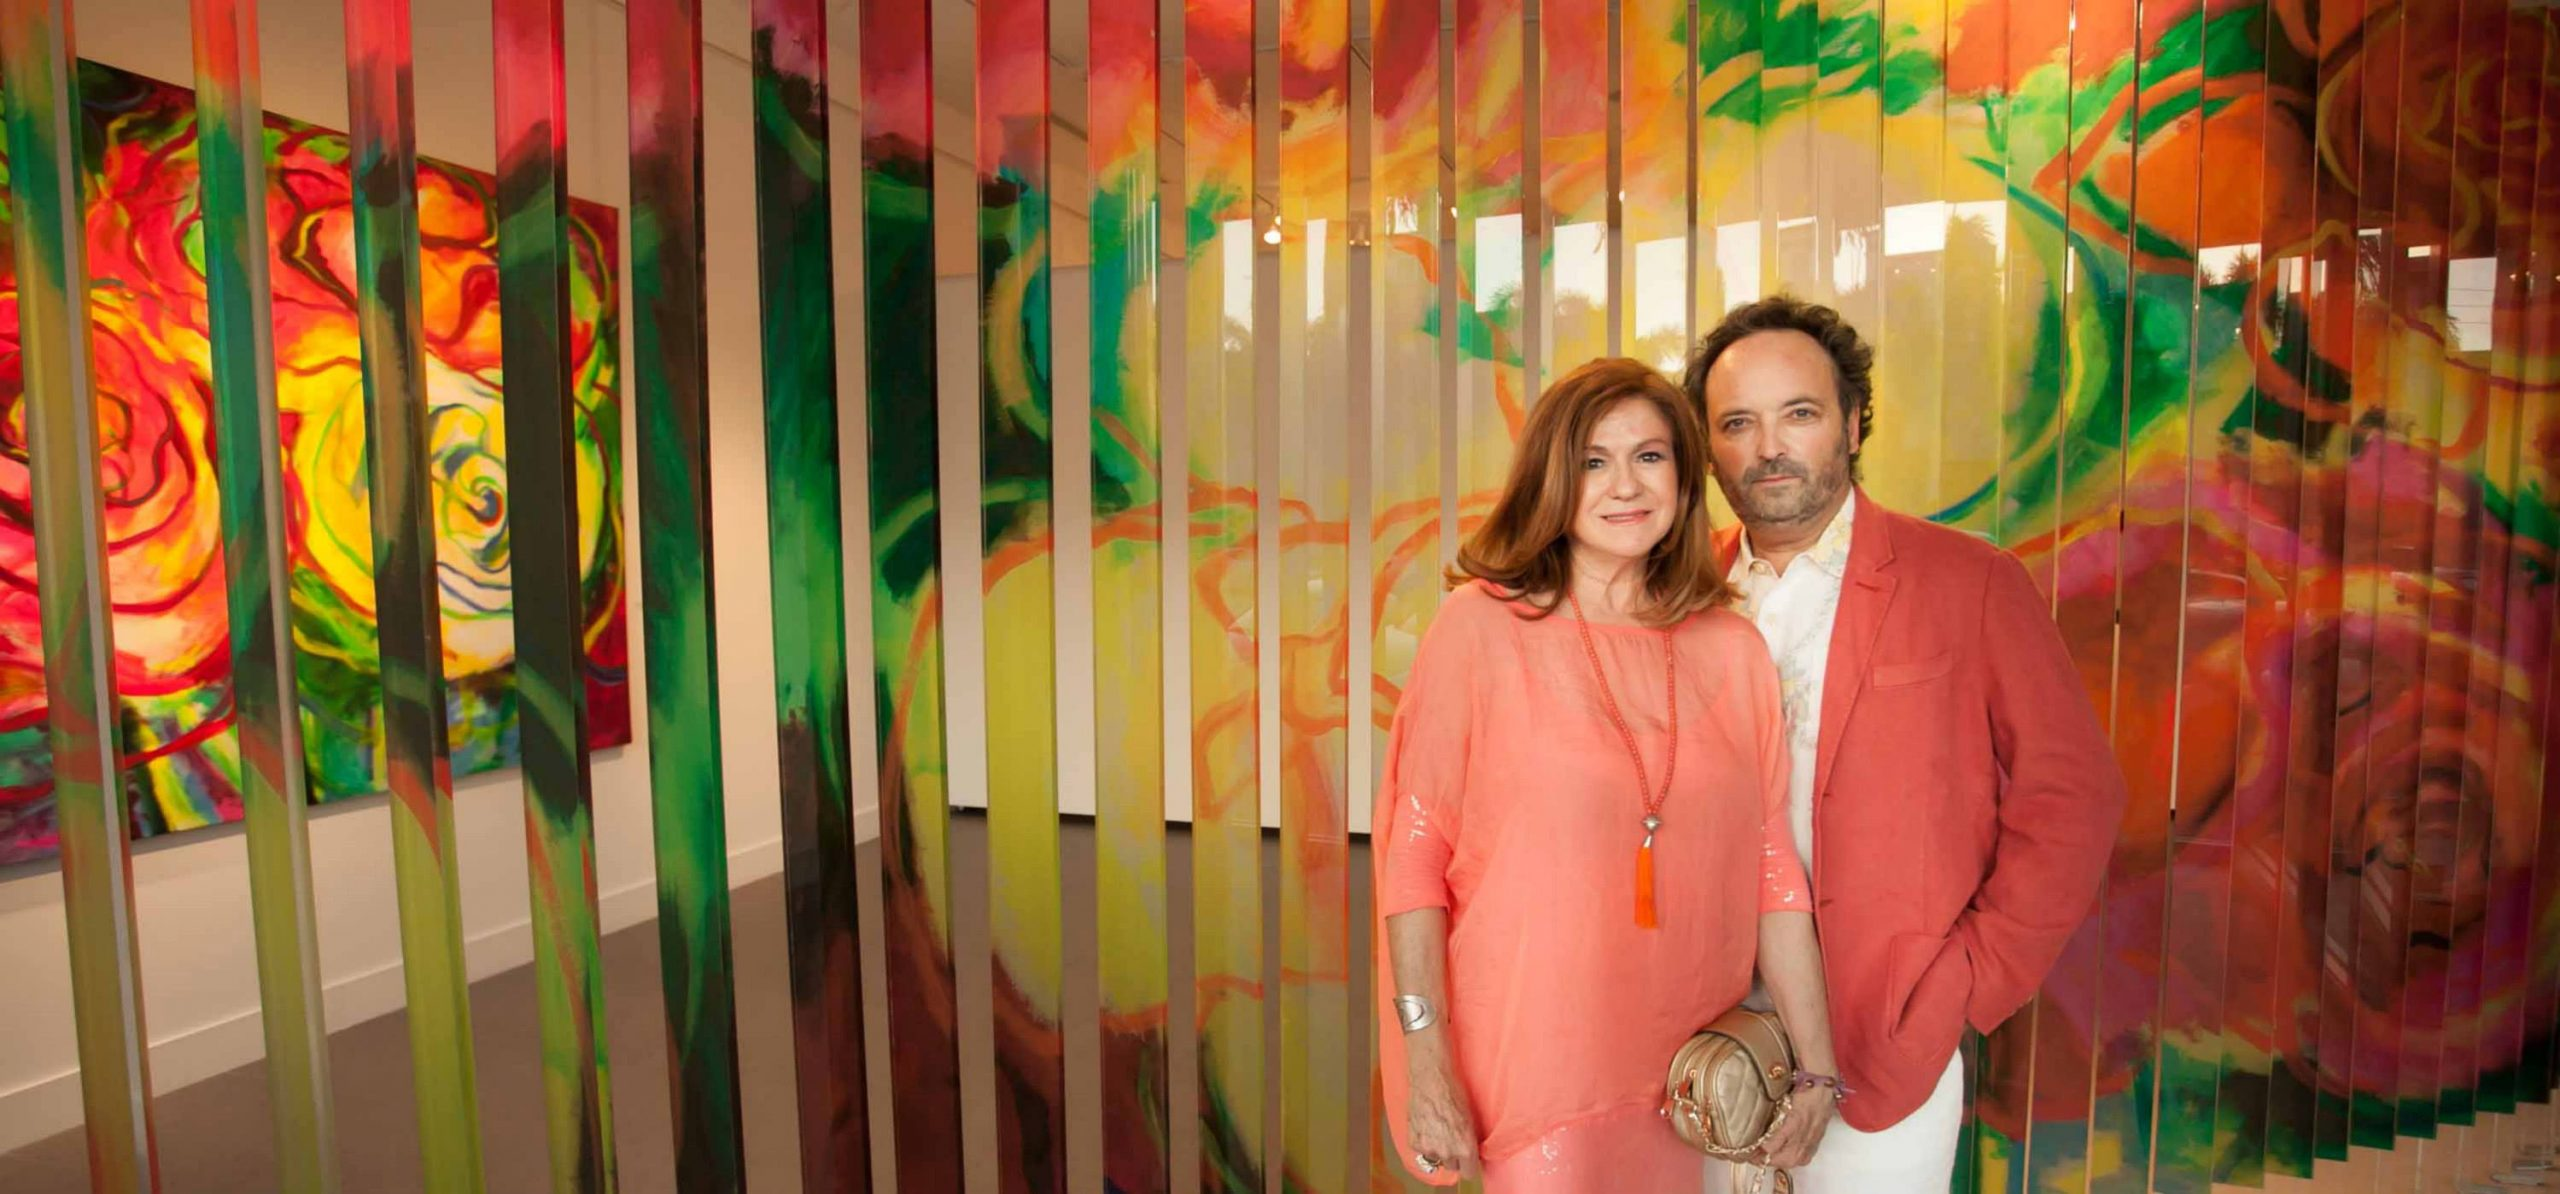 Manuel Herrera y Francisca Muñoz, MUHER expusieron en The Americas Collection en MIAMI